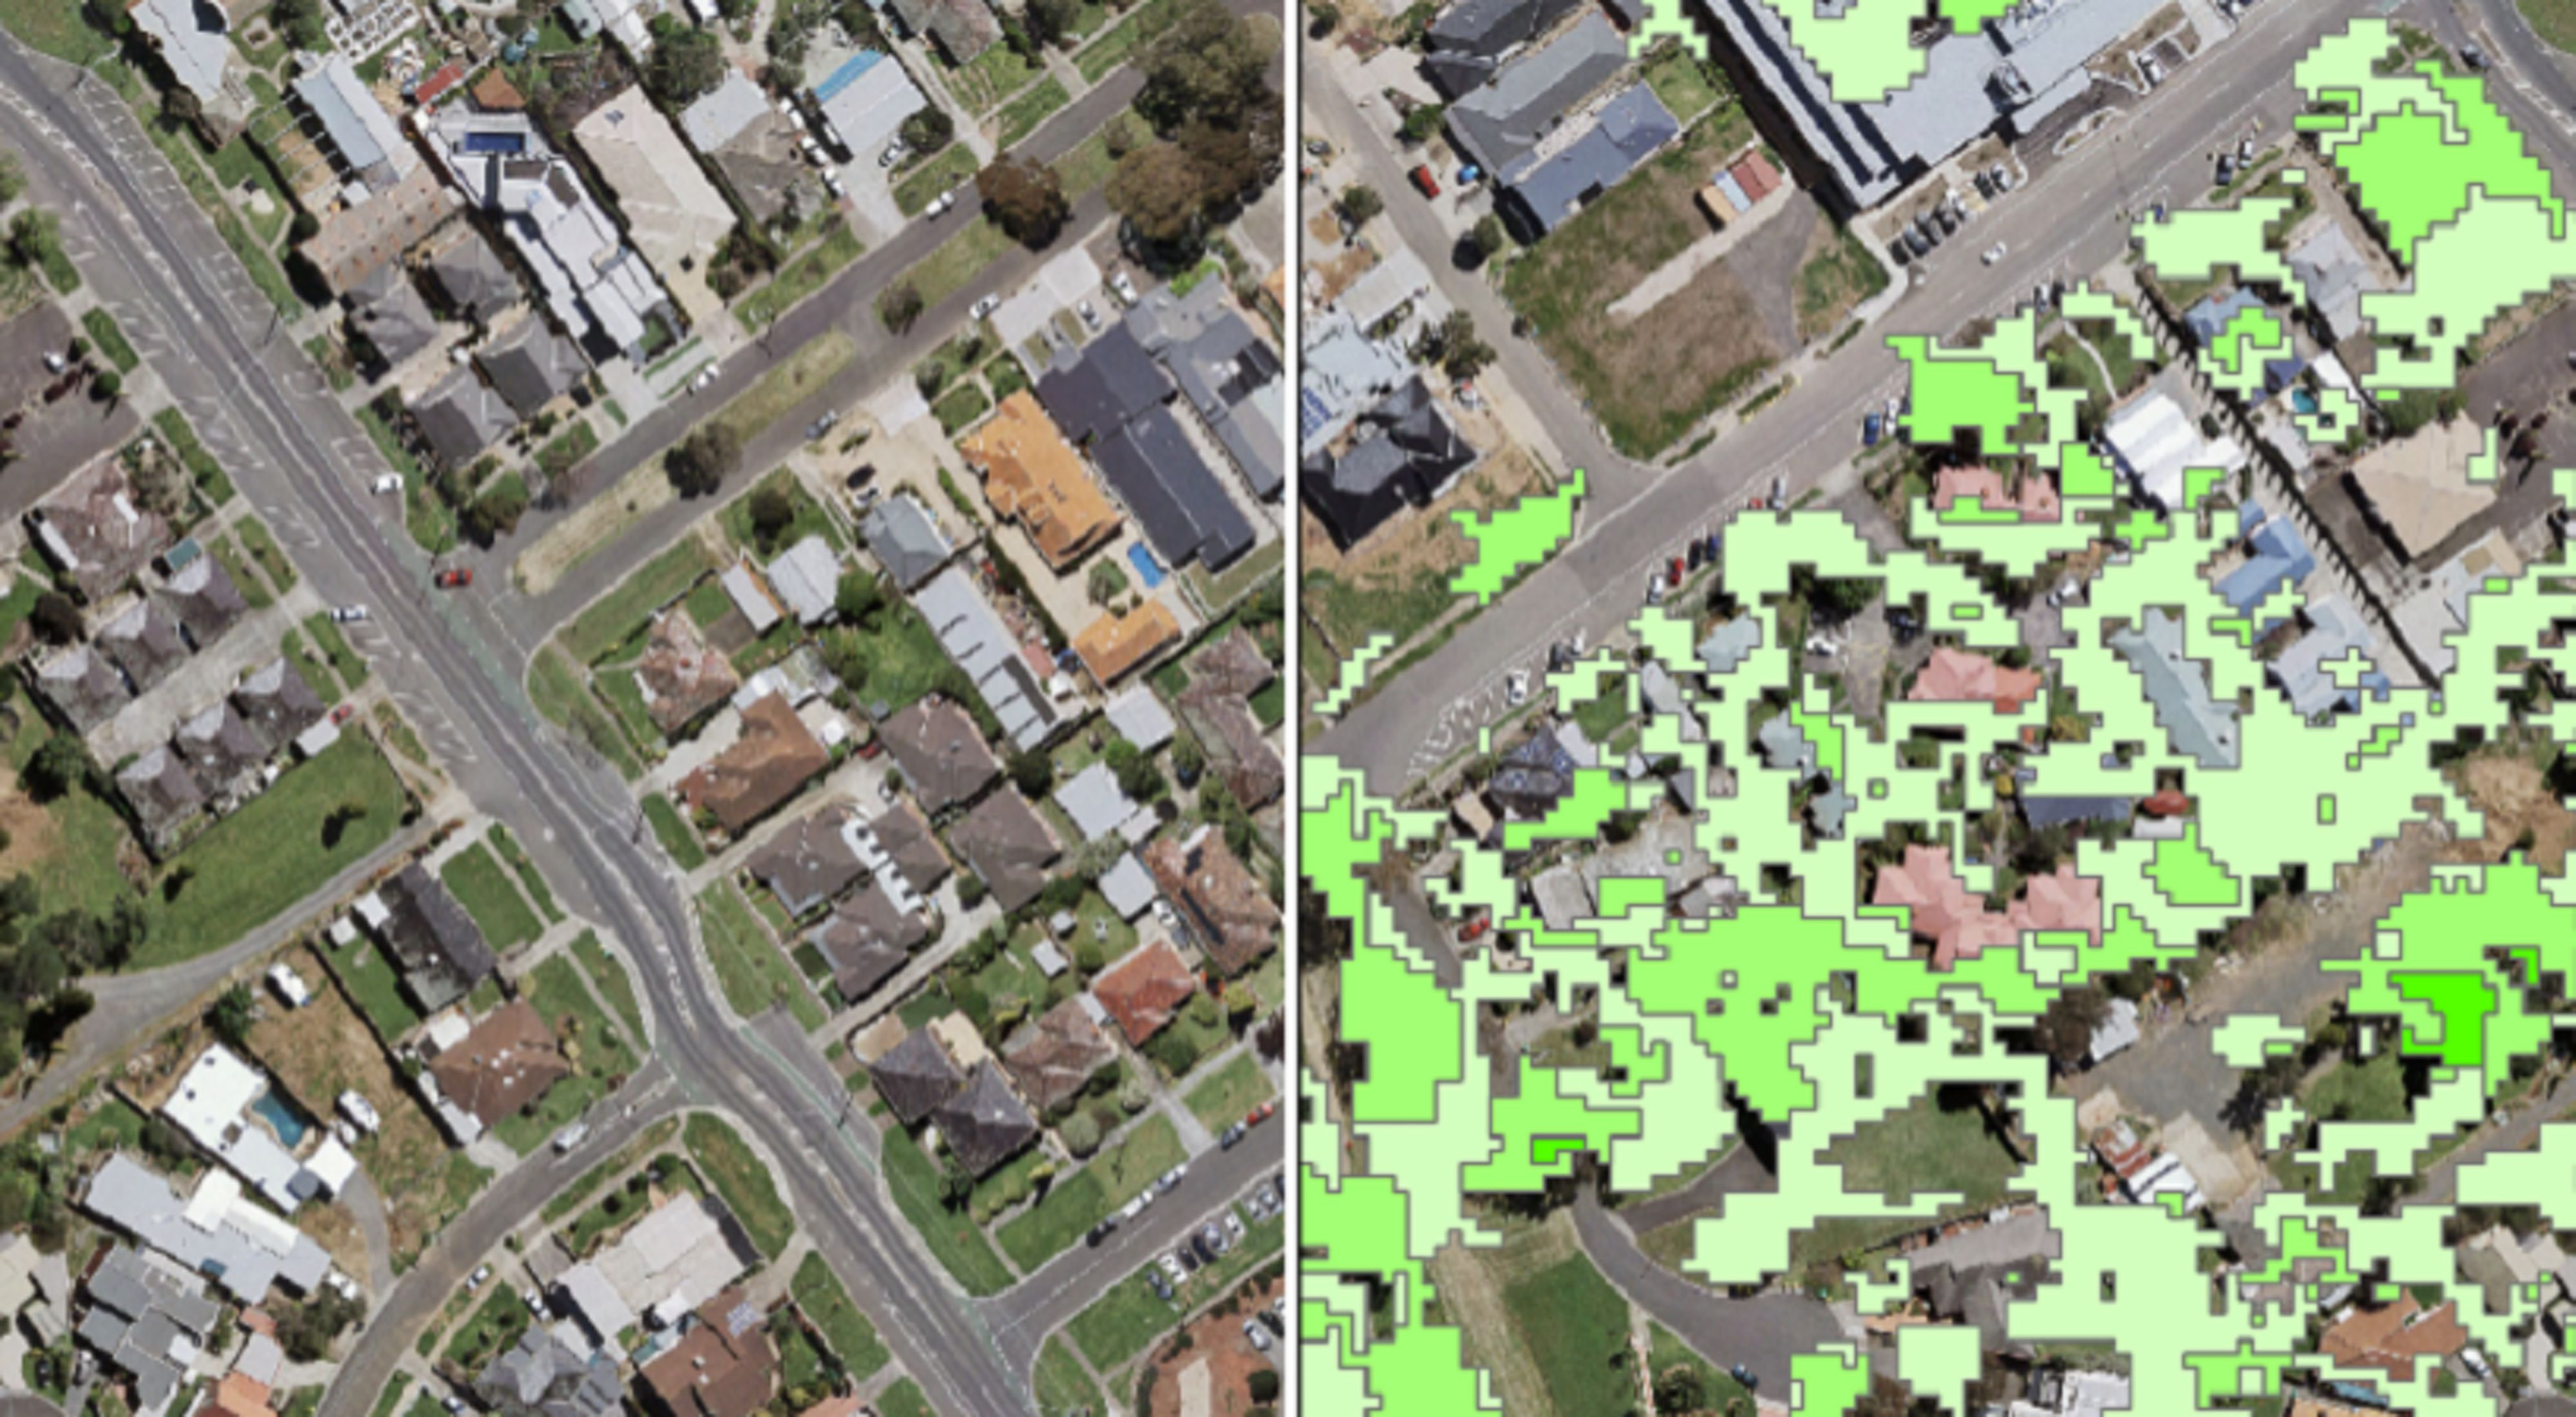 satellite technology maps out plants of various sizes across Melbourne